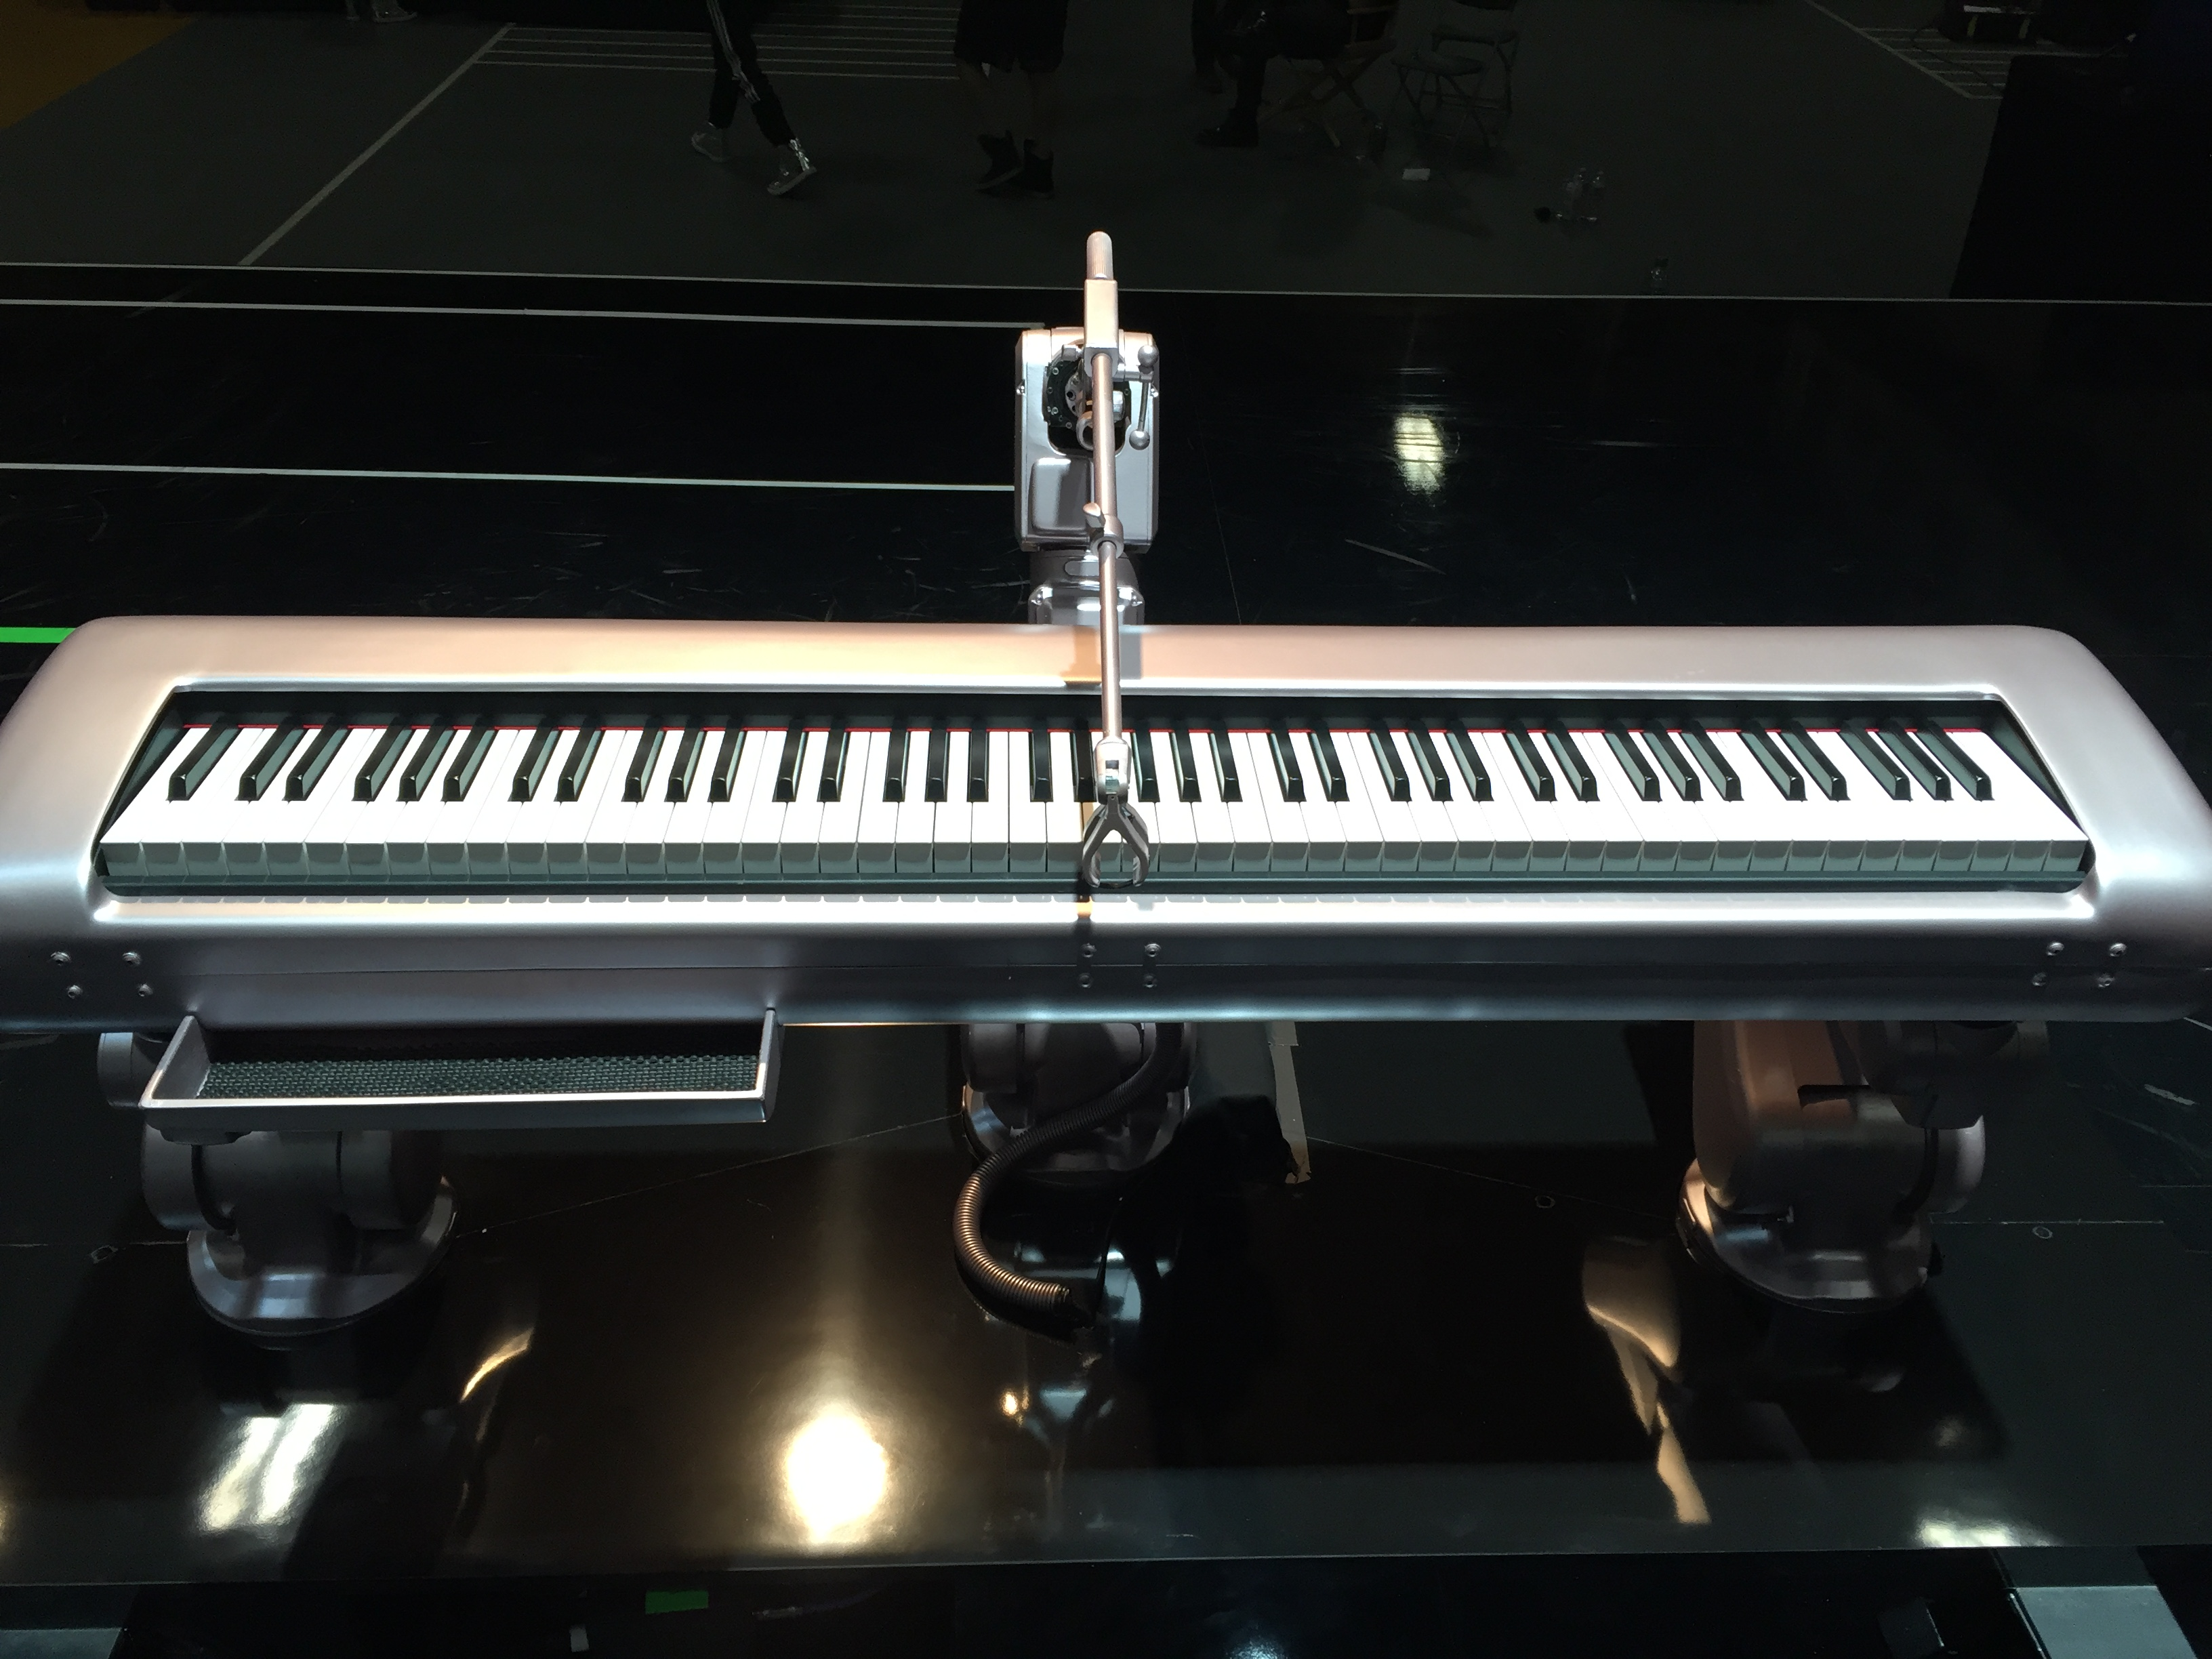 Lady gagas robotic keyboard had some help from nasa the rose gold robotic keyboard image credit lg industrial bots or any bots for that matter hadnt before been used on a stage as grand as the ccuart Image collections